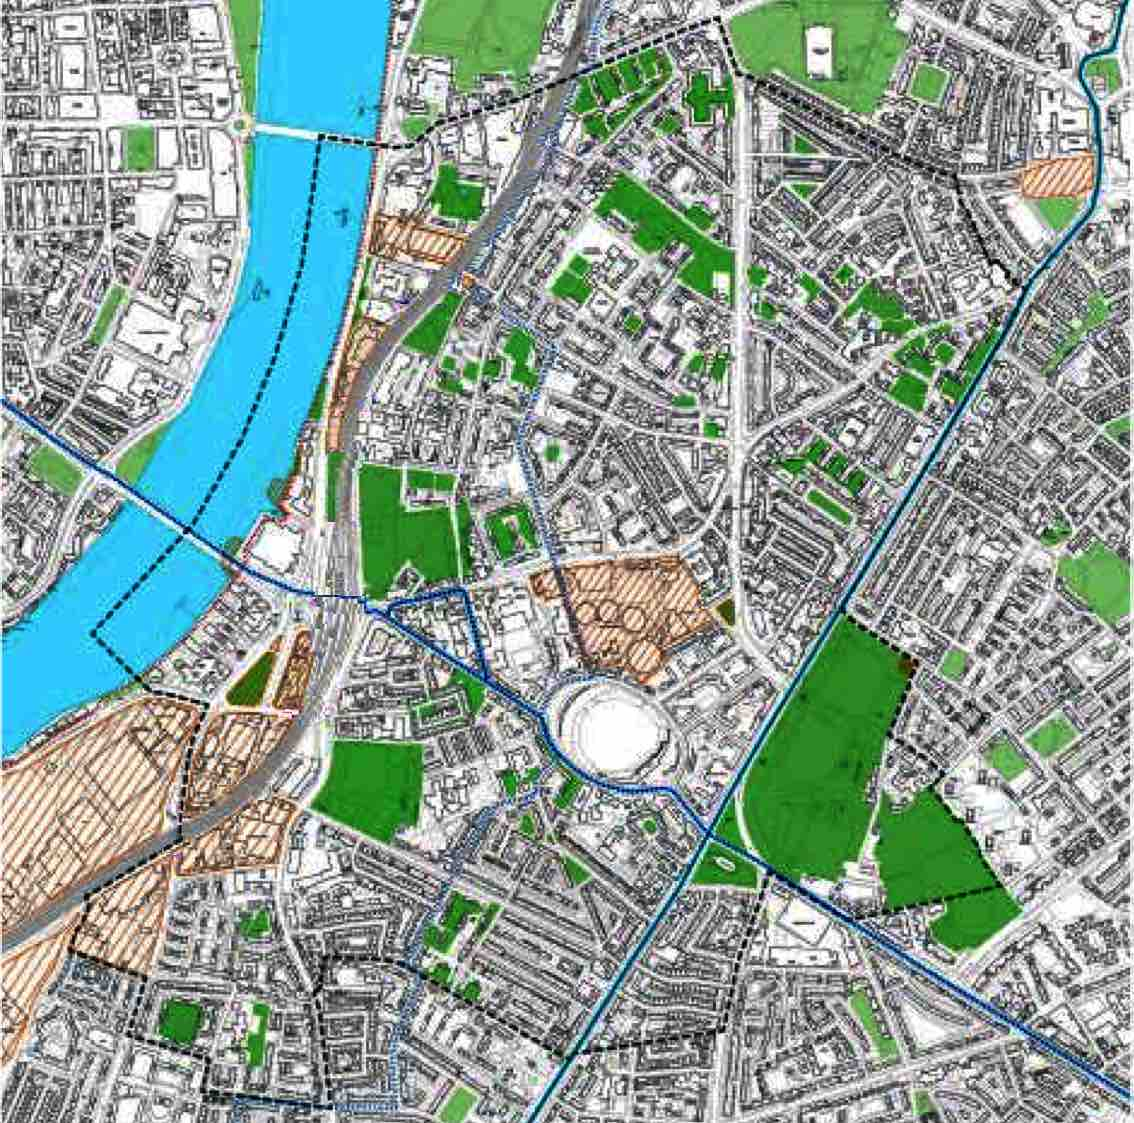 Kennington Oval Vauxhall Neighbourhood Plan Area